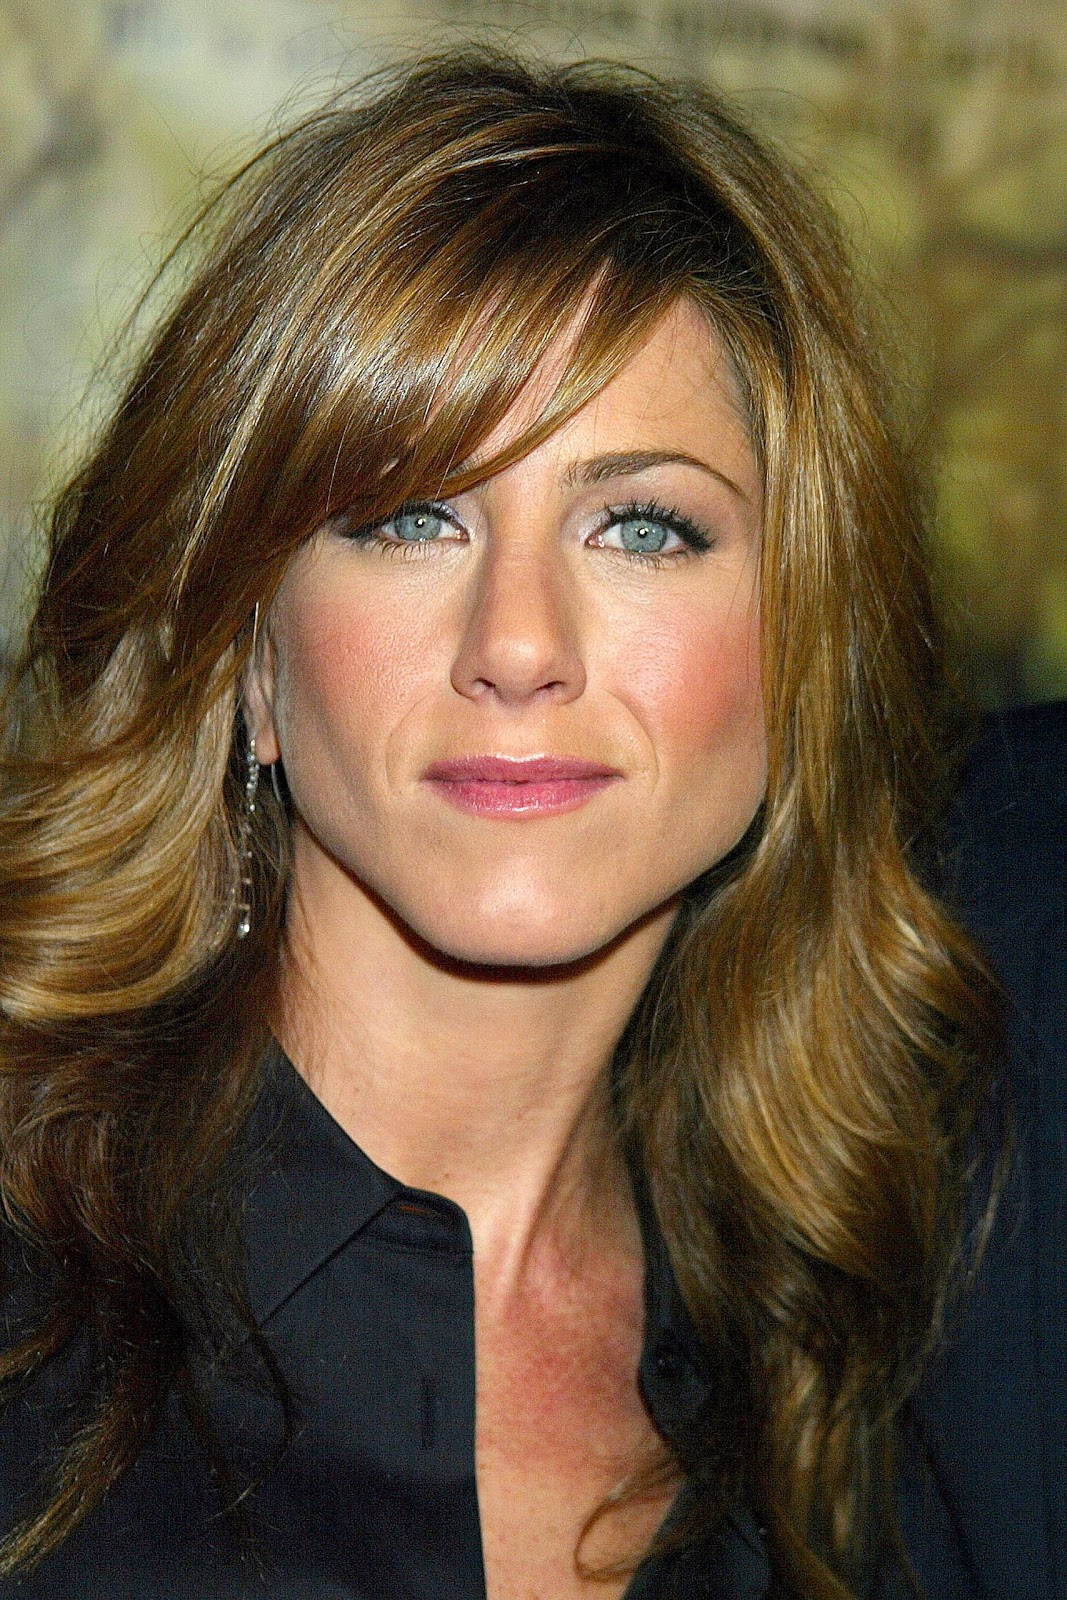 http://1.bp.blogspot.com/-Mp0Kgg-05UA/TlAD0T8RTlI/AAAAAAAAAOU/cLO07DhD0z0/s1600/Jennifer-Aniston-movie-pics-pictures-photos-images-adam-bio+%25281%2529.jpg